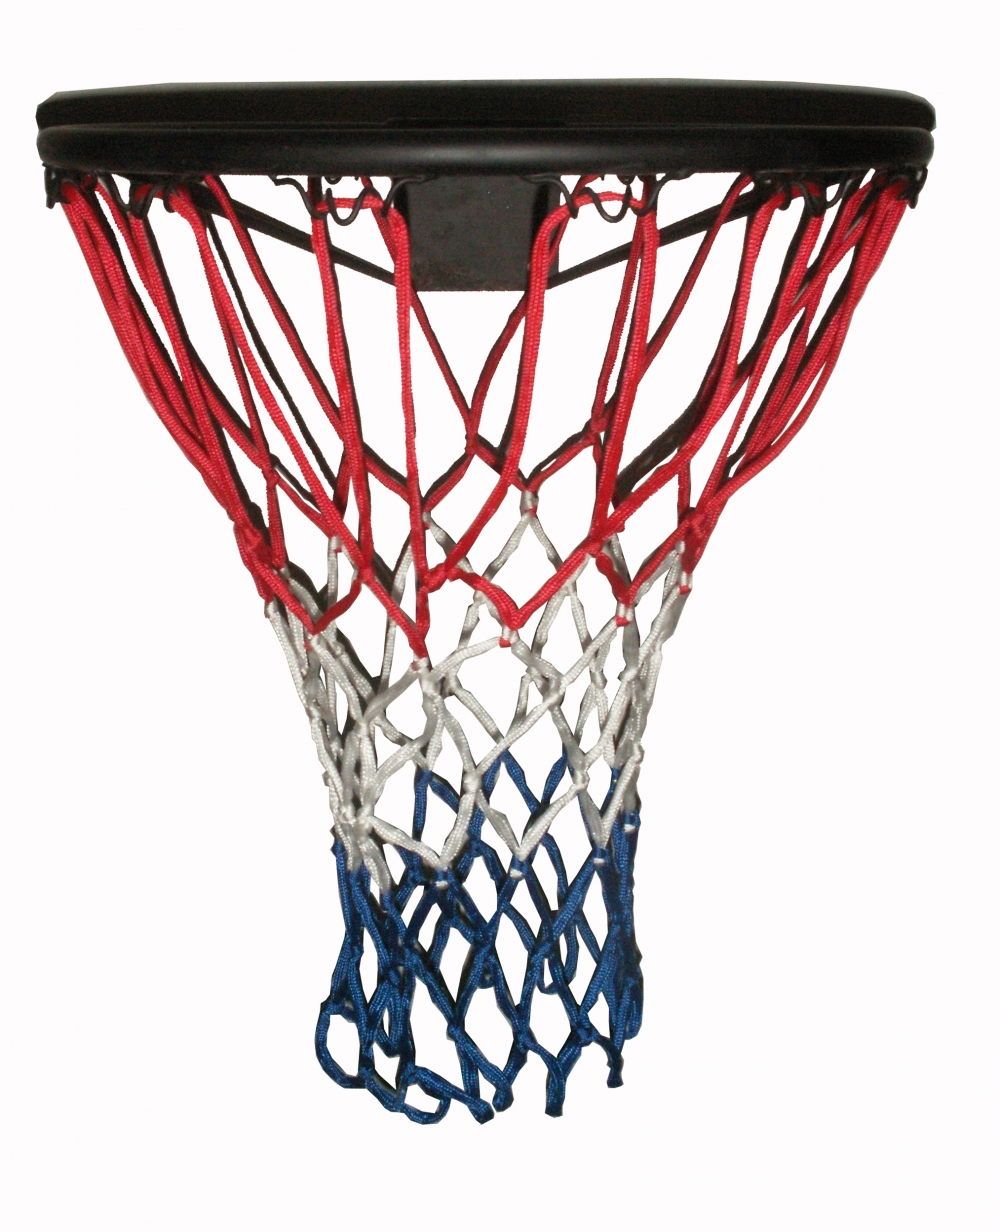 Basketkorg